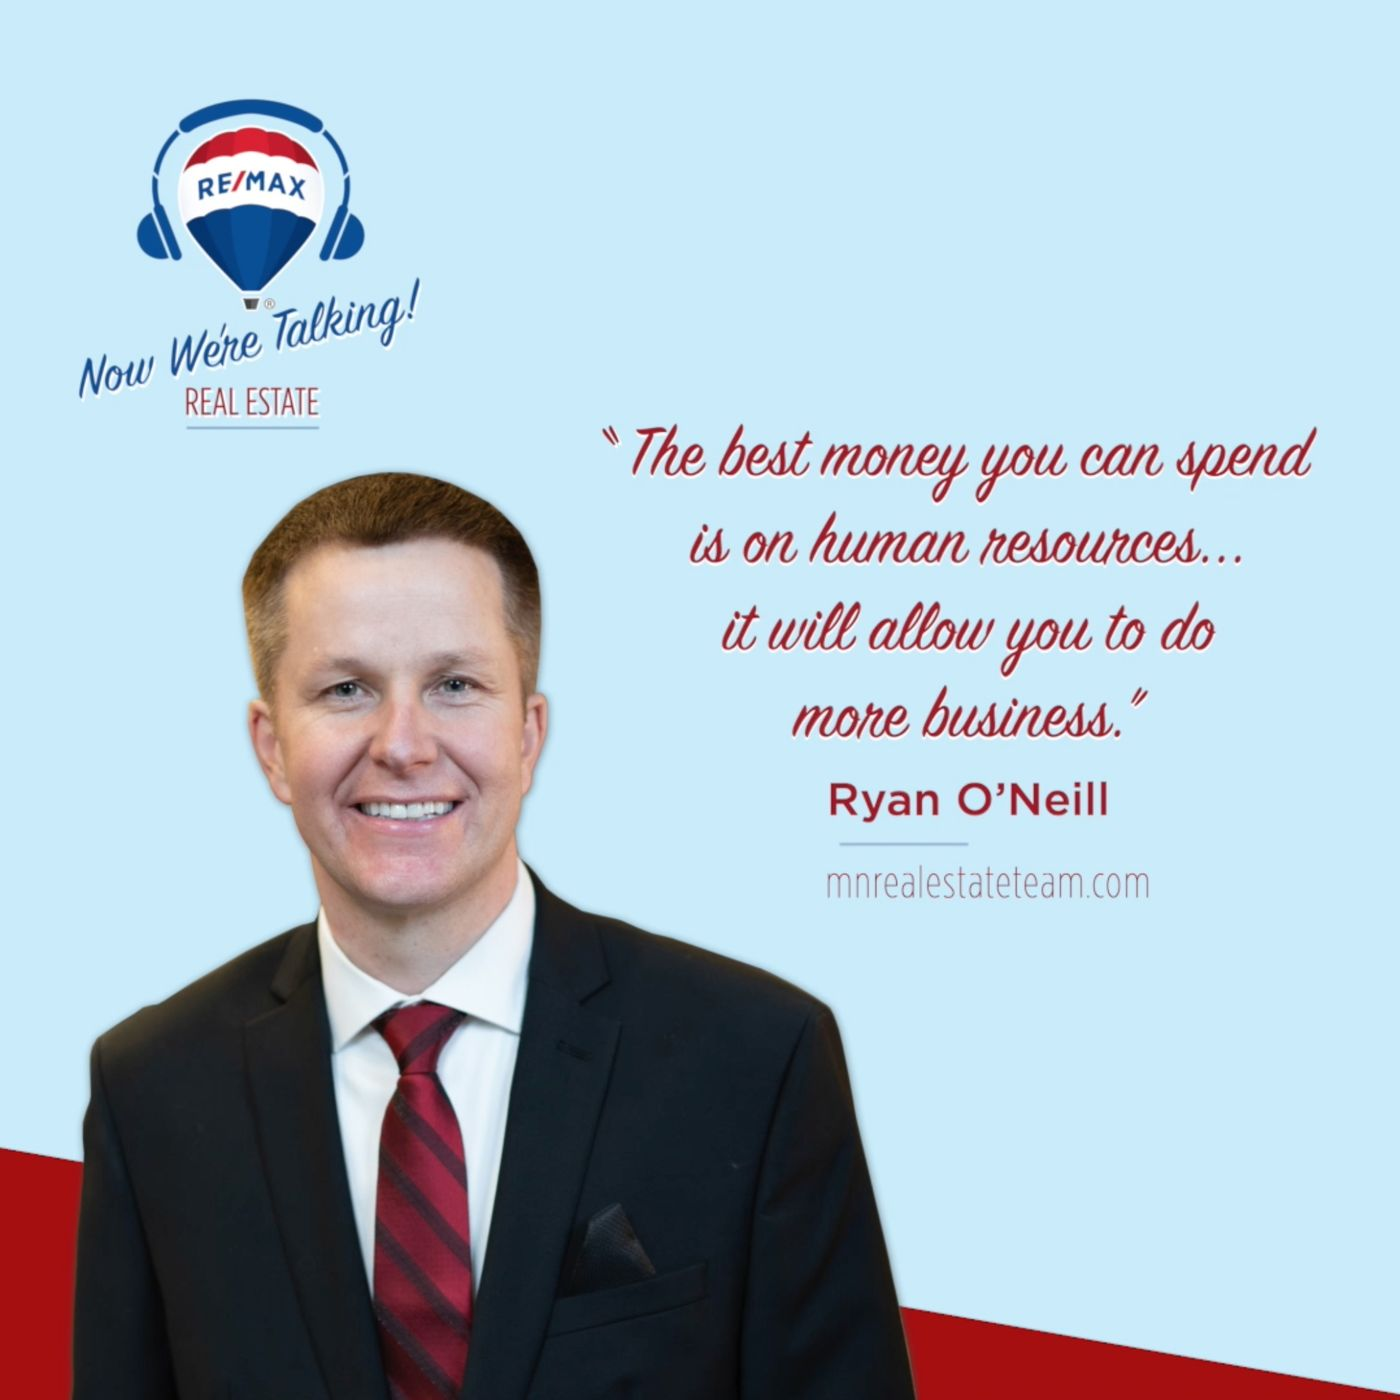 Be Real. Be Relatable: Team Building Tips from Top Team Leader Ryan O'Neill